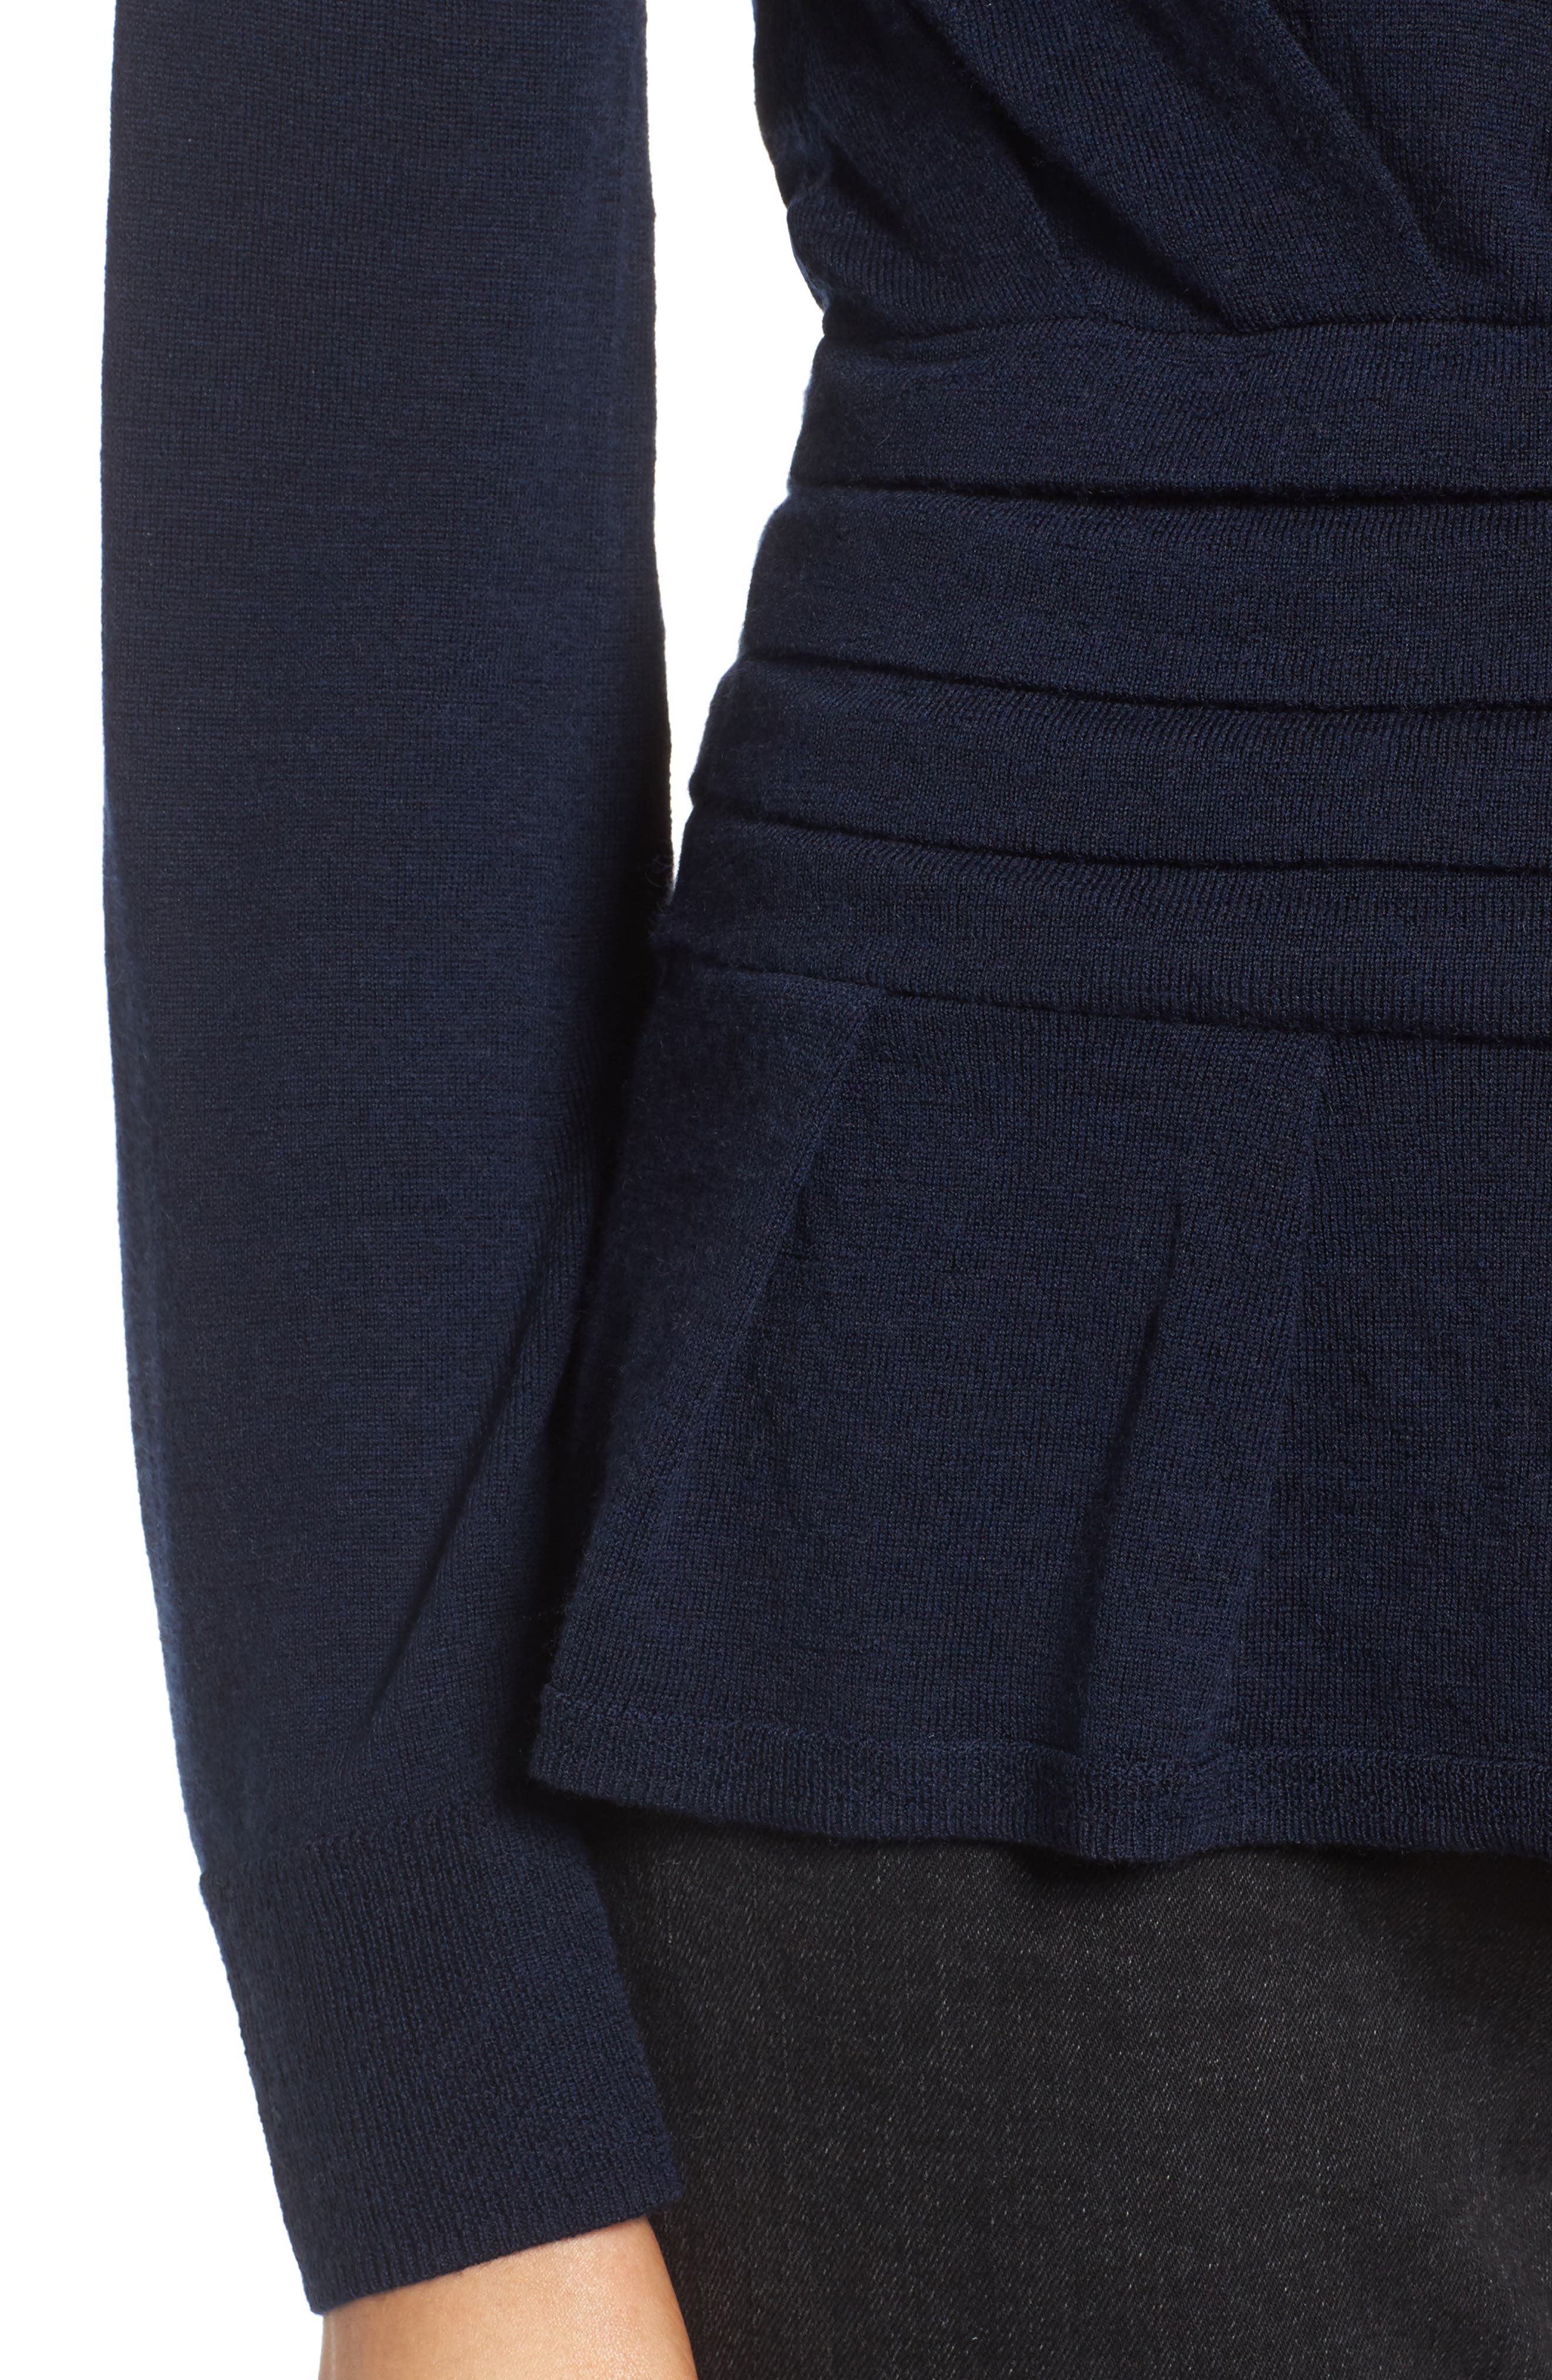 x Something Navy One-Sleeve Sweater,                             Alternate thumbnail 4, color,                             Navy Night